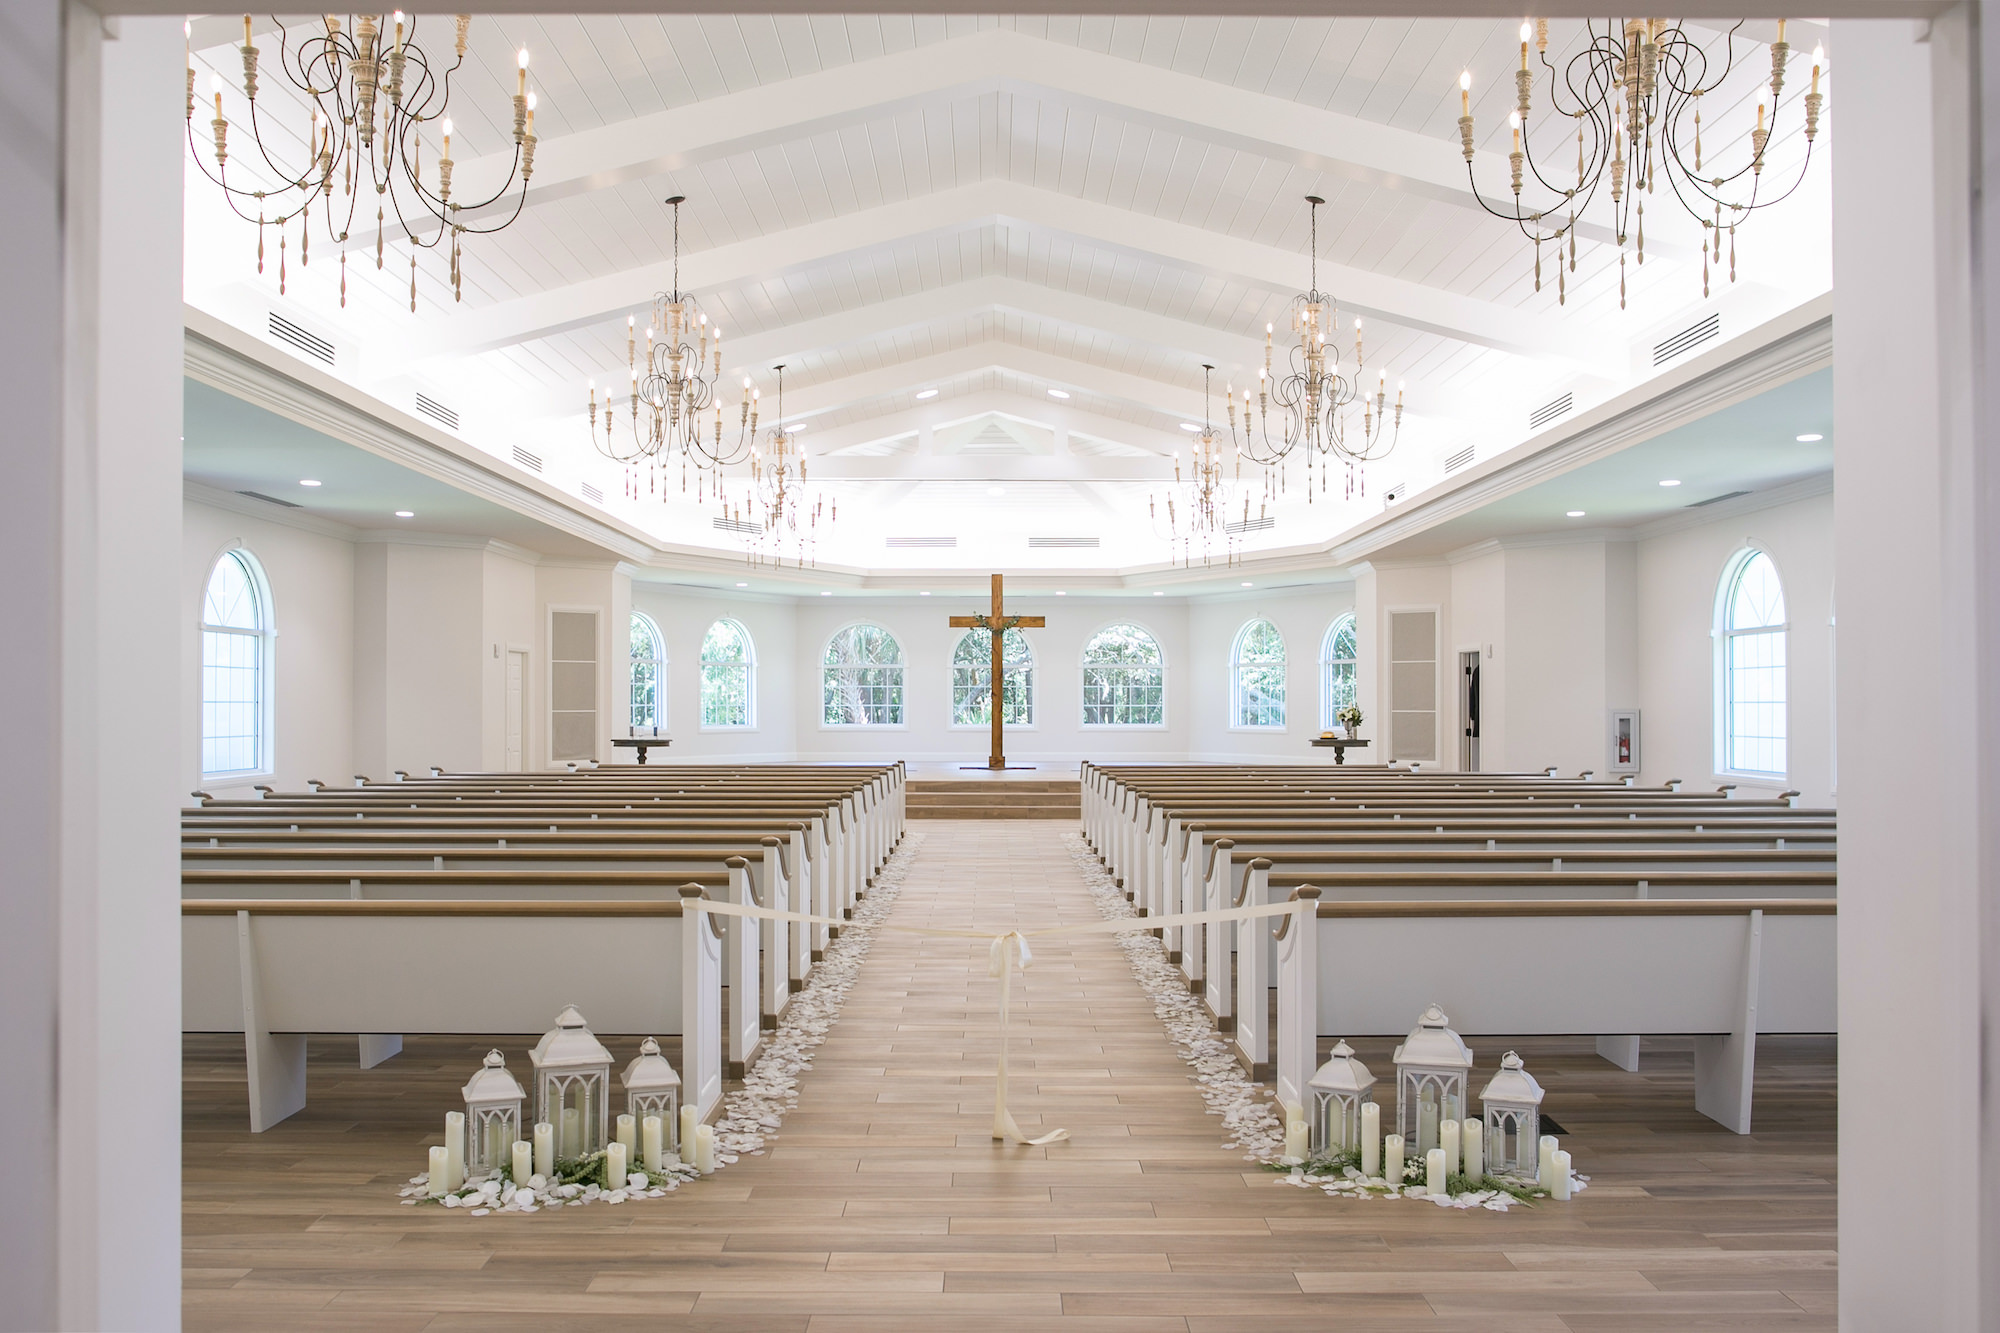 Safety Harbor Wedding Ceremony Traditional Church Venue Harborside Chapel with White Lanterns Decor   Tampa Bay Wedding Photographer Carrie Wildes Photography   Planner Love Lee Lane